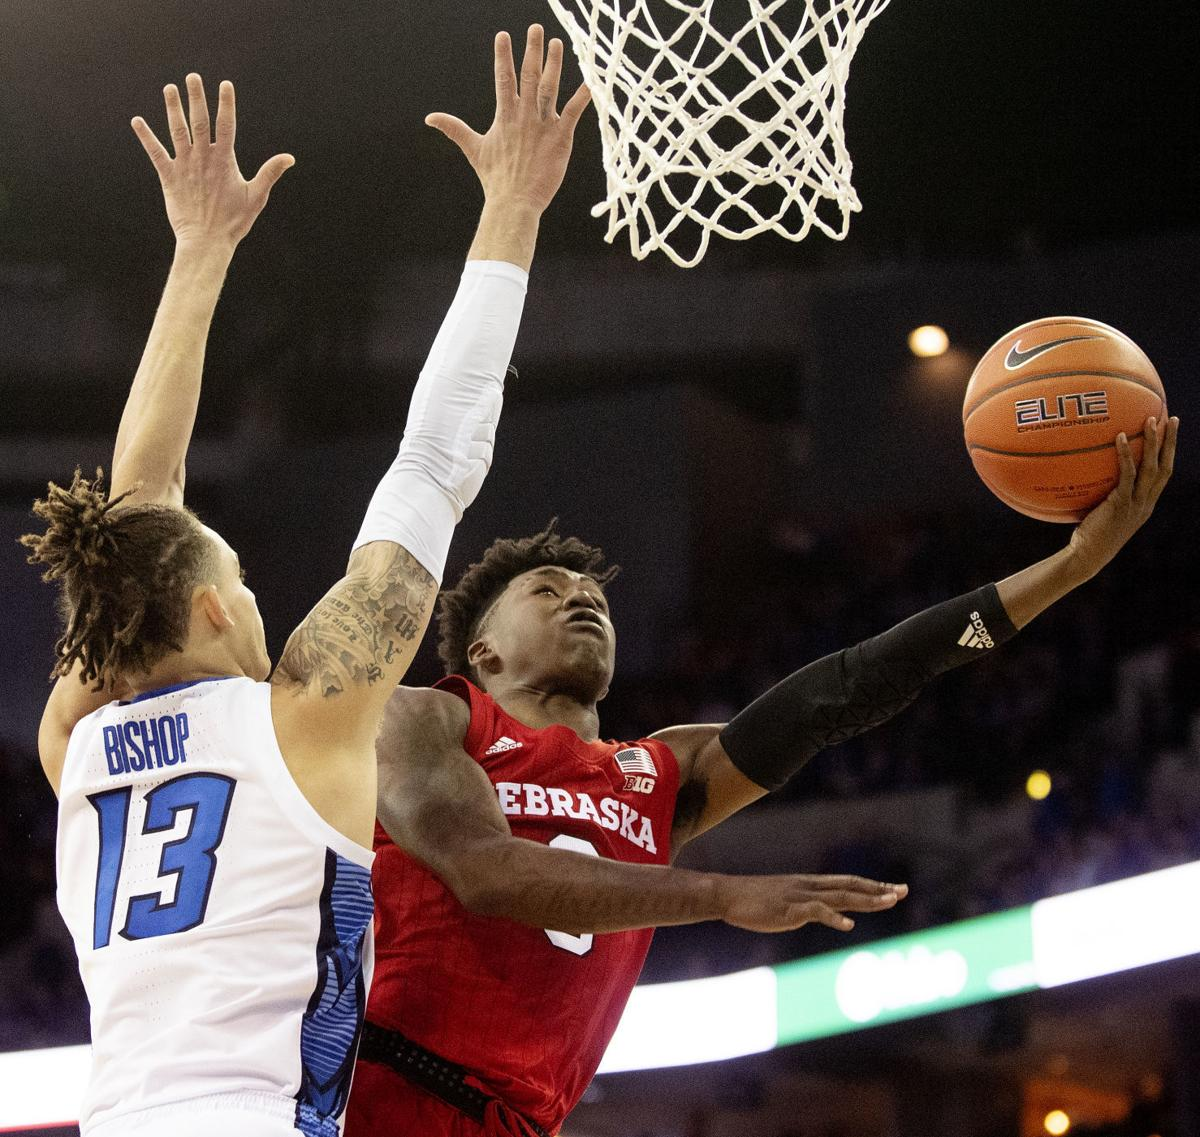 Creighton vs. Nebraska, 12.7